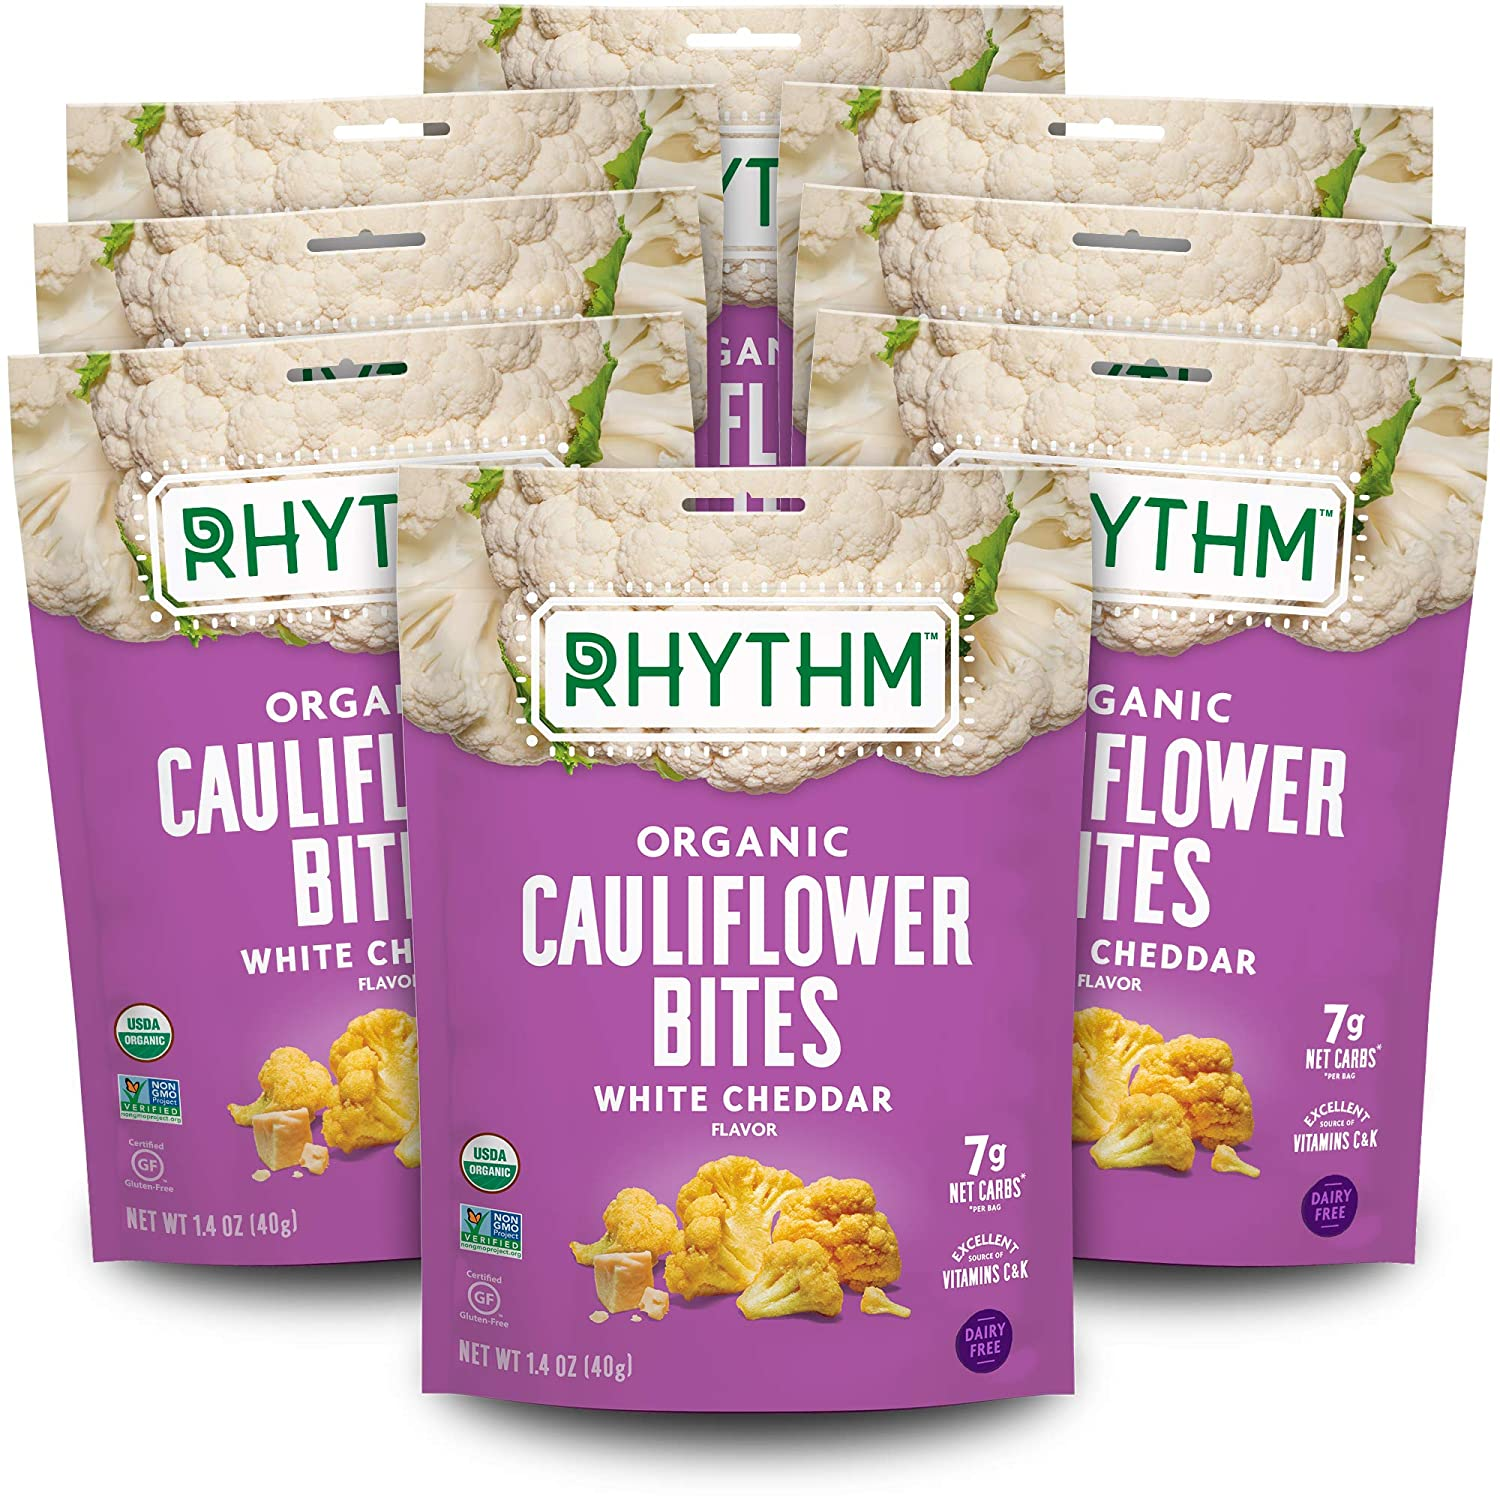 Rhythm Superfoods Crunchy Cauliflower Bites,Organic & Non-GMO, Vegan/Gluten-Free Vegetable Superfood Snacks, White Cheddar, 1.4 Ounce (Pack Of 8)